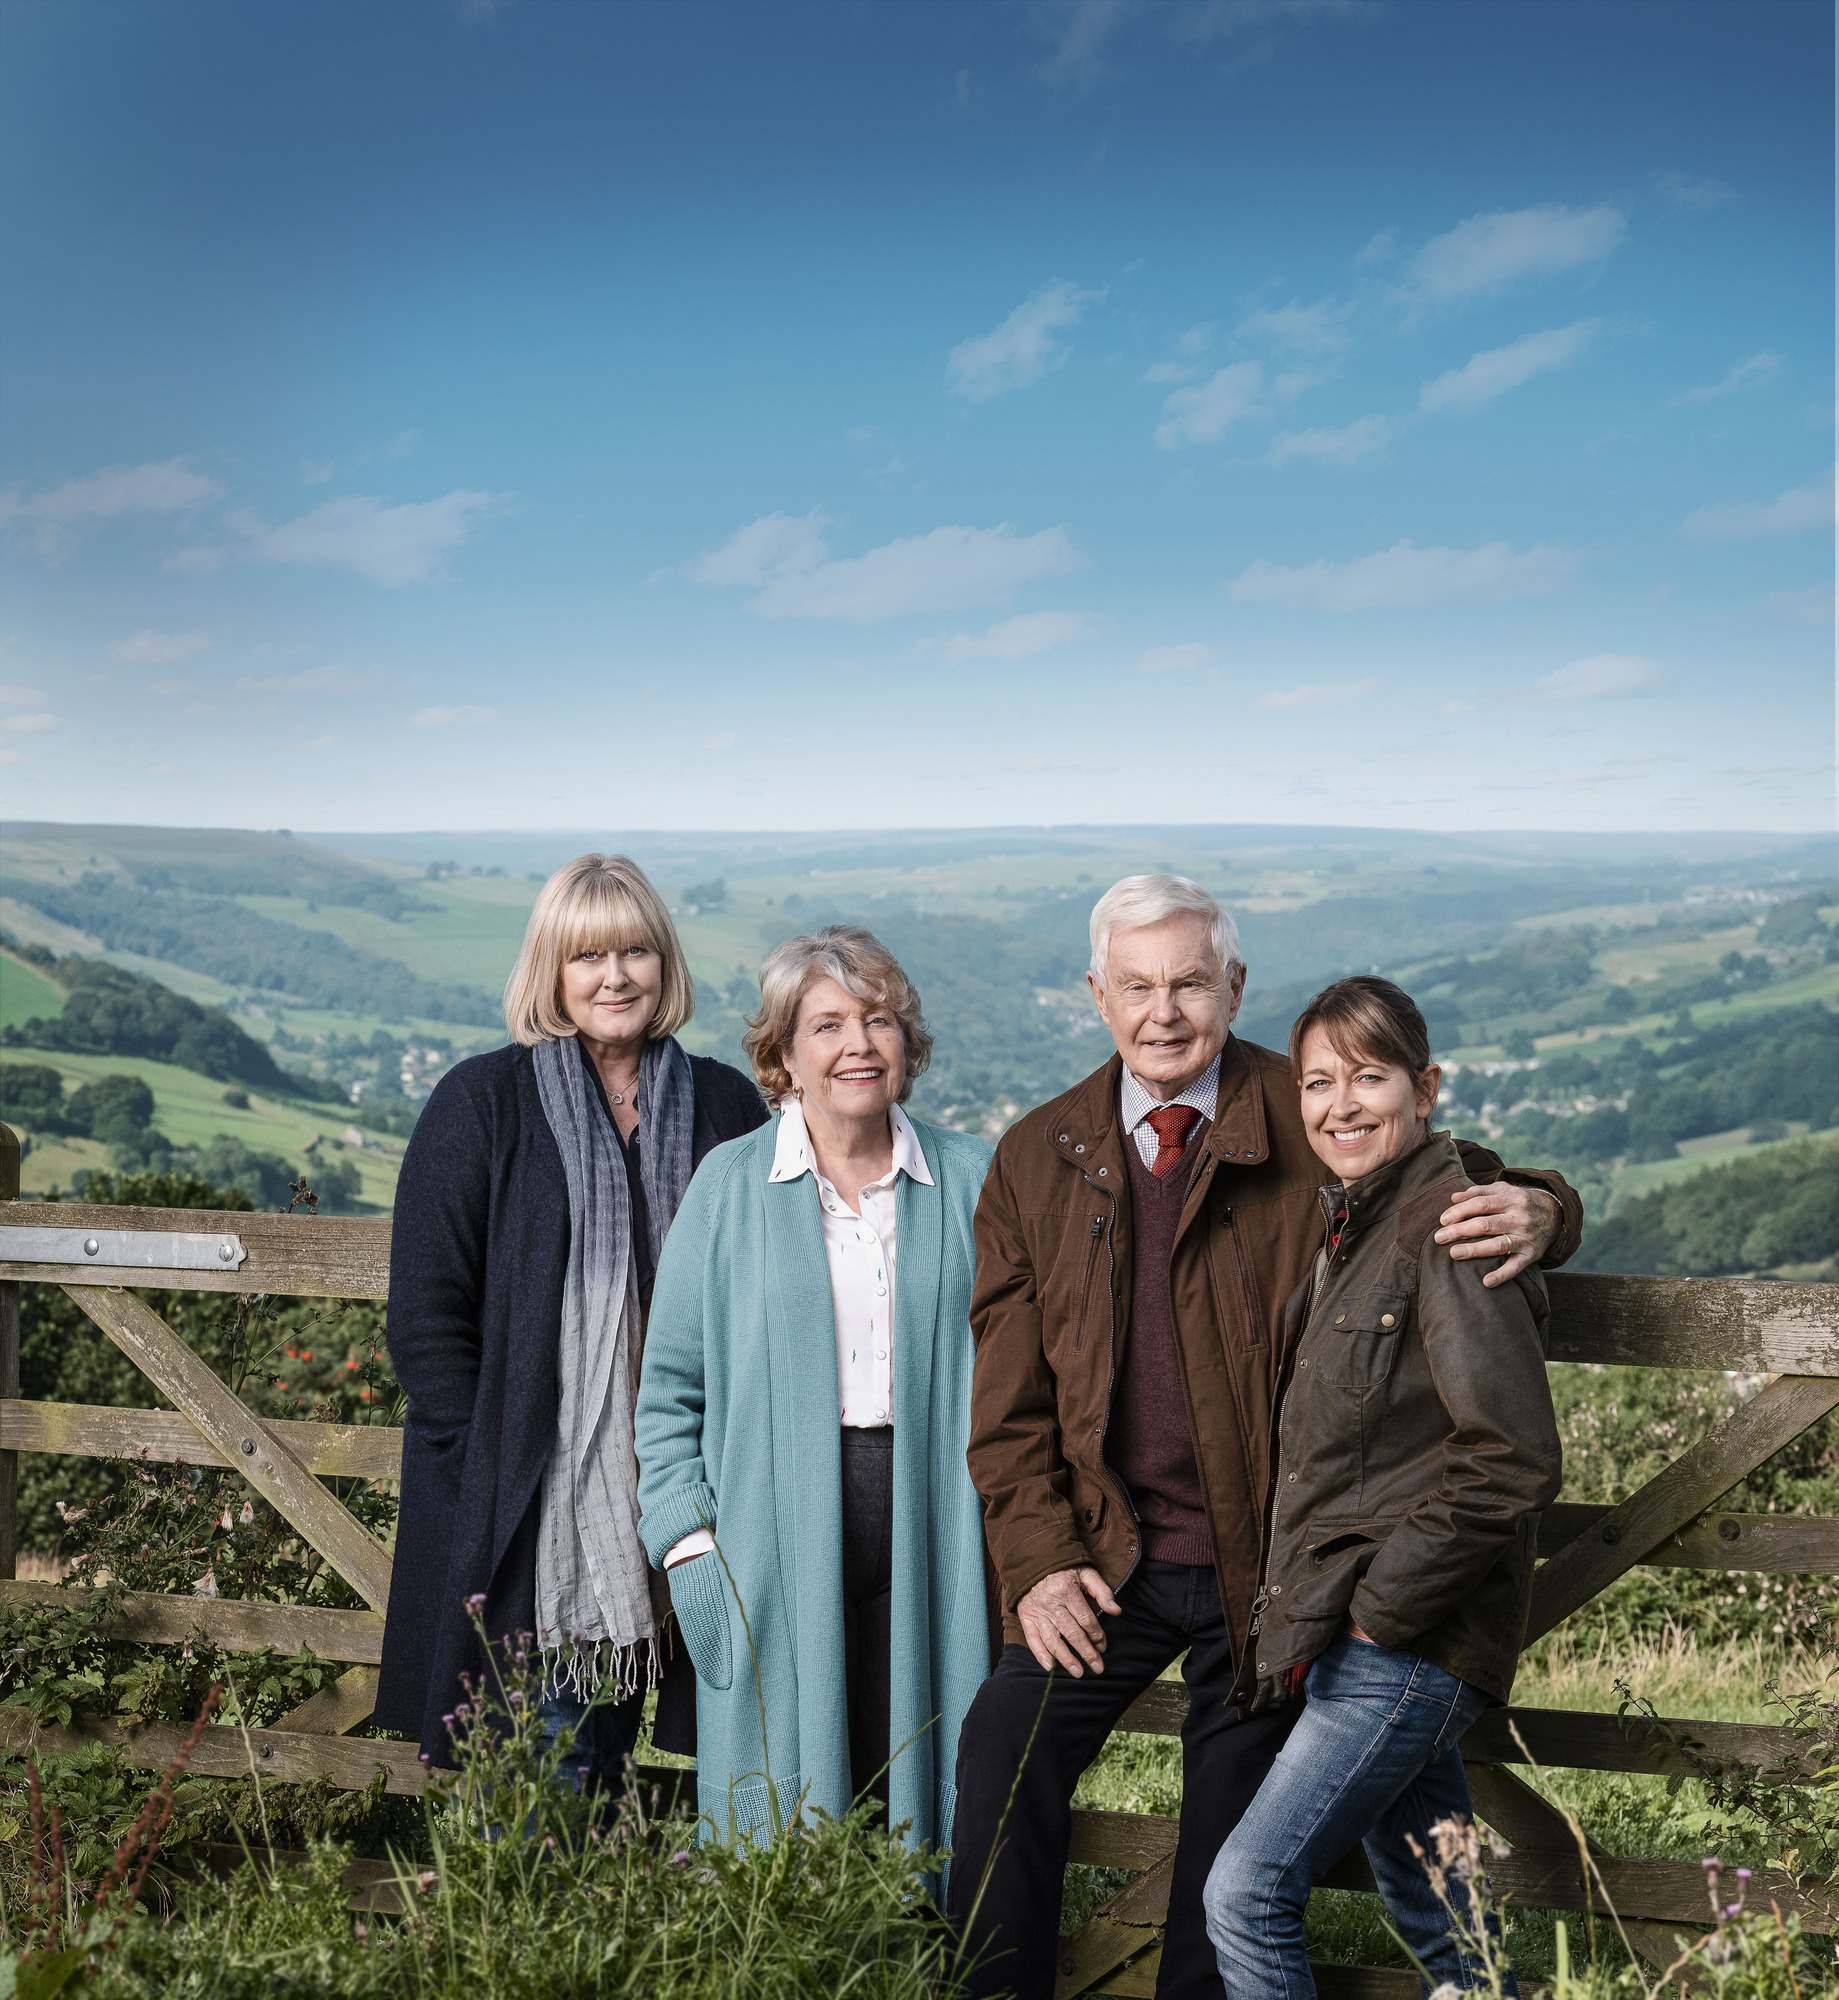 Nicola Walker and her co-stars in Last Tango in Halifax (Credit: BBC One)